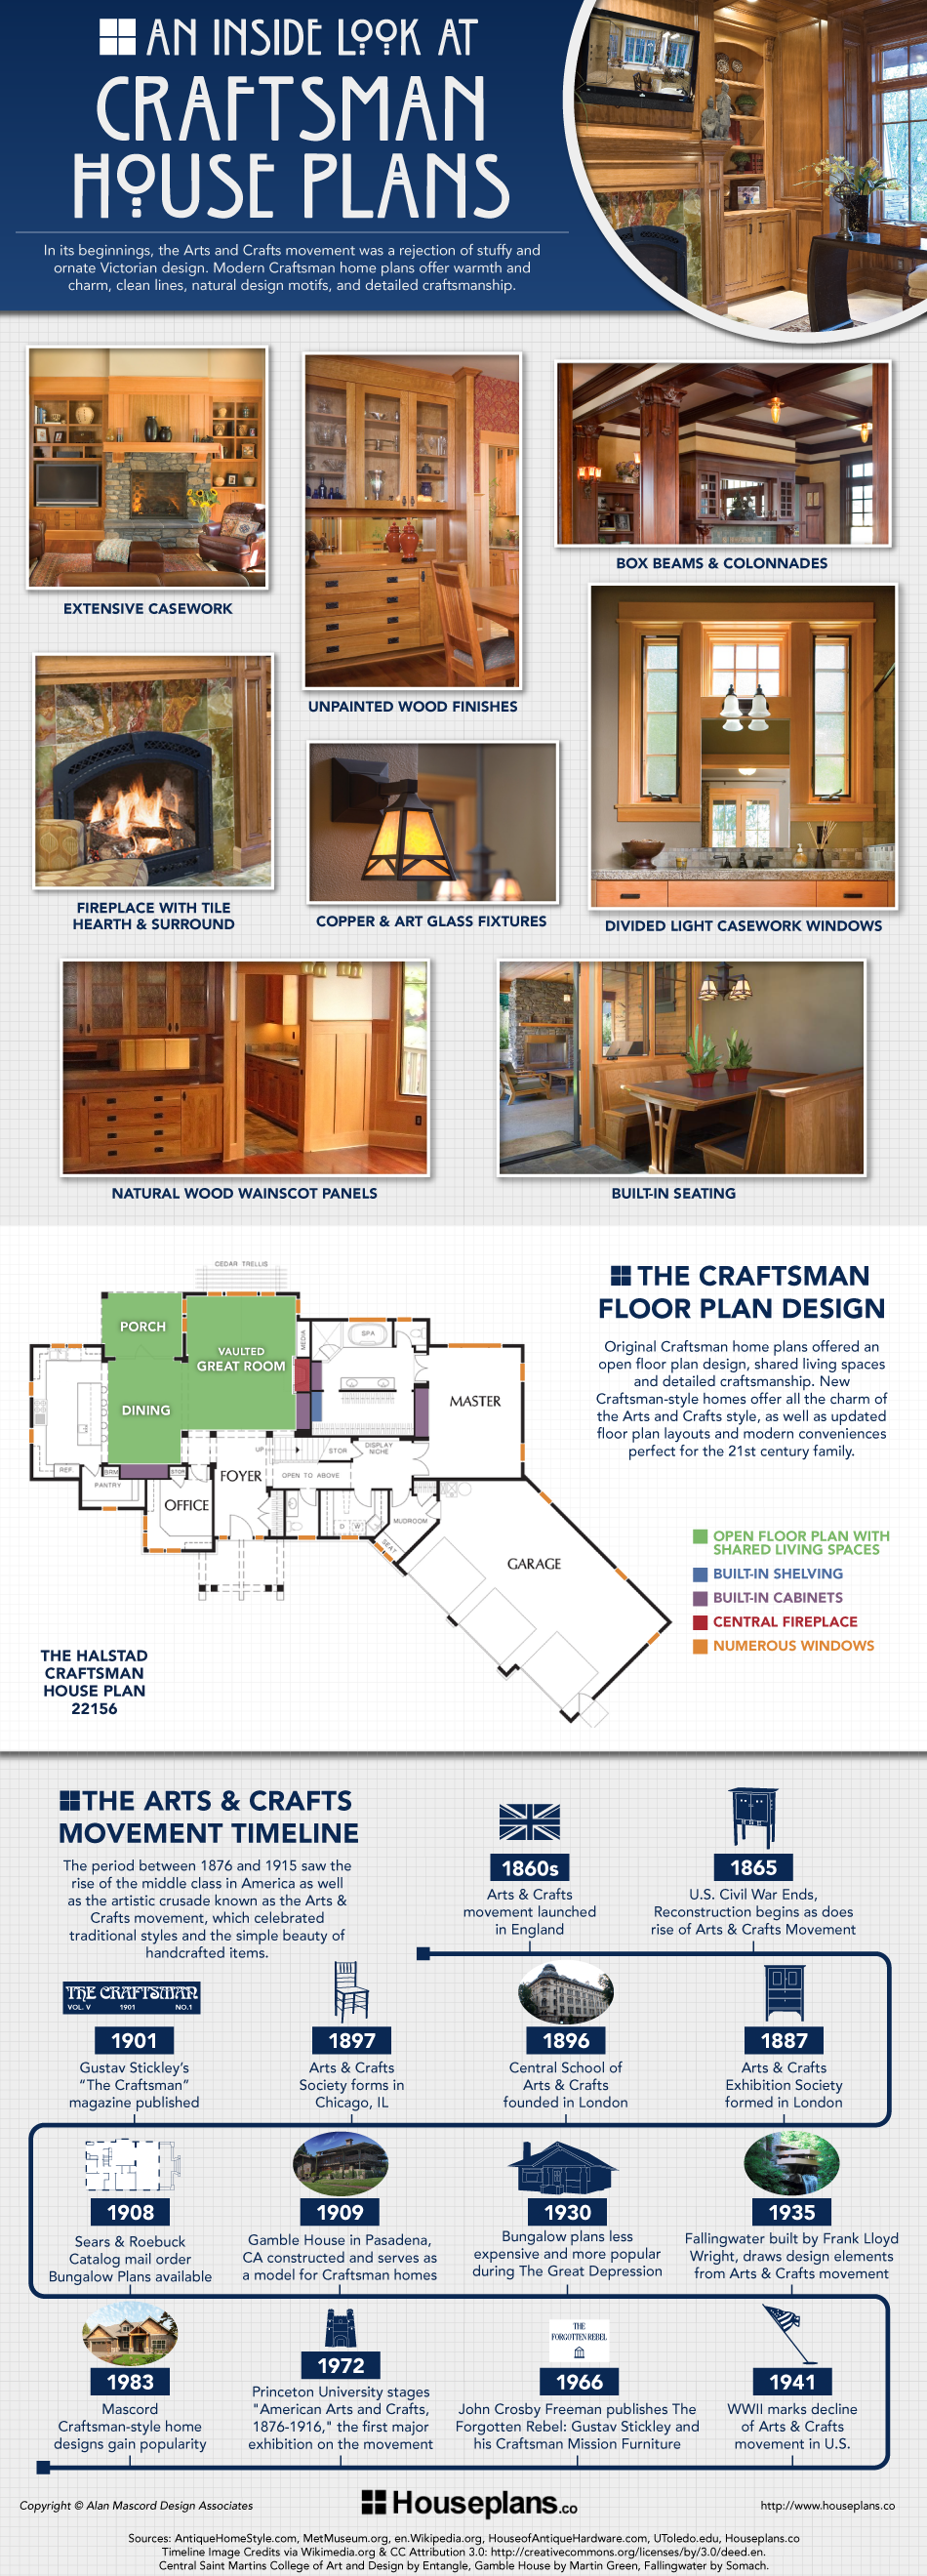 An Inside Look at Craftsman House Plans [Infographic]   Craftsman ...